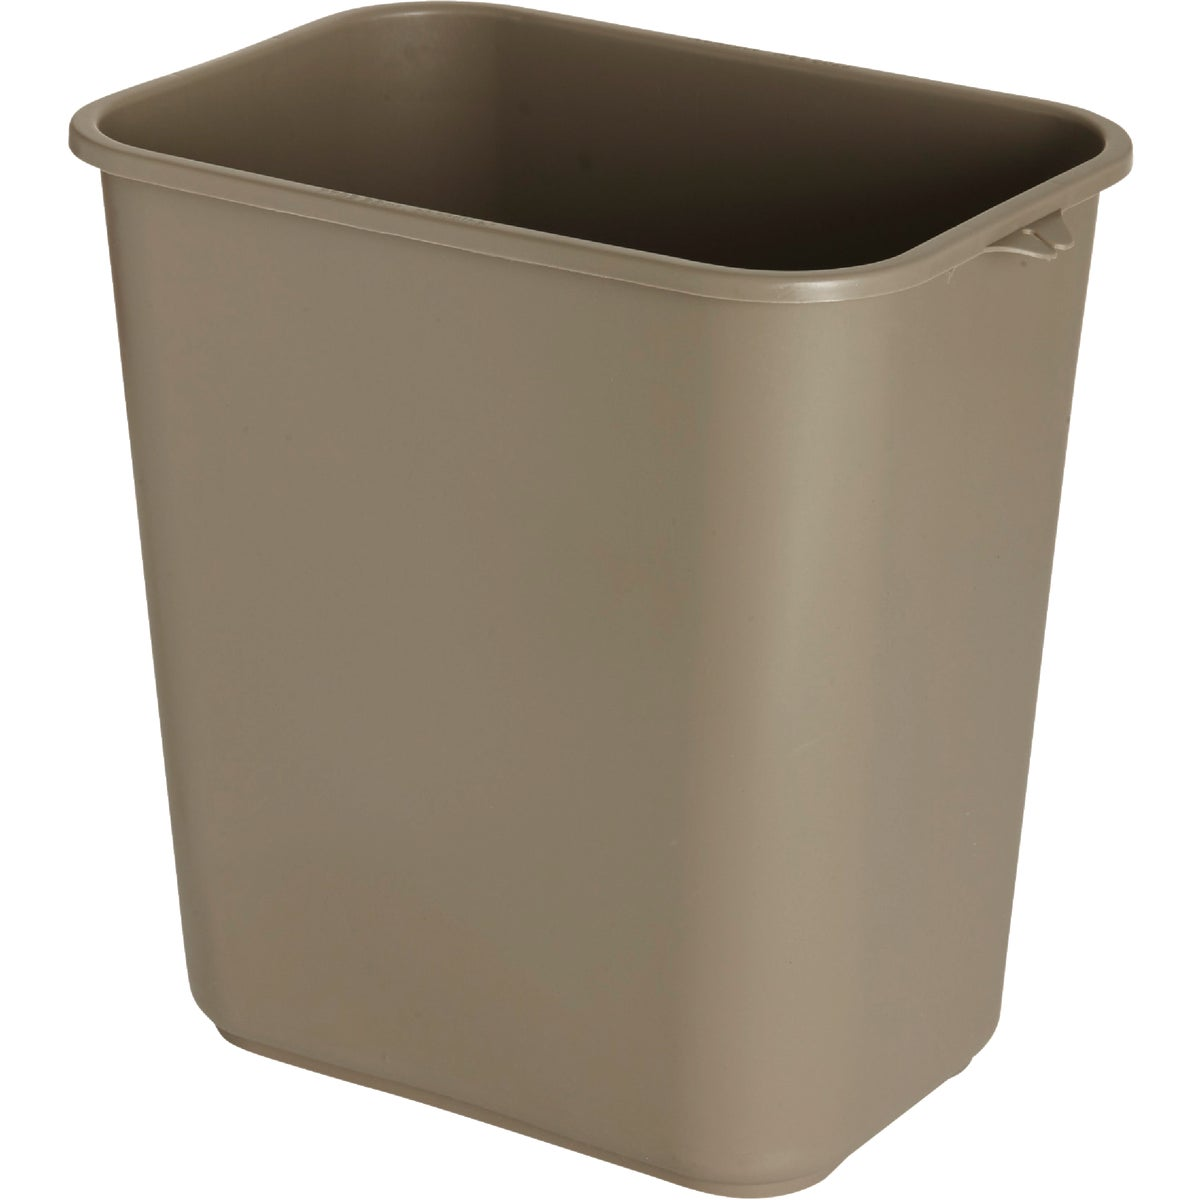 28-1/8QT BGE WASTEBASKET - FG295600BEIG by Rubbermaid Comm Prod